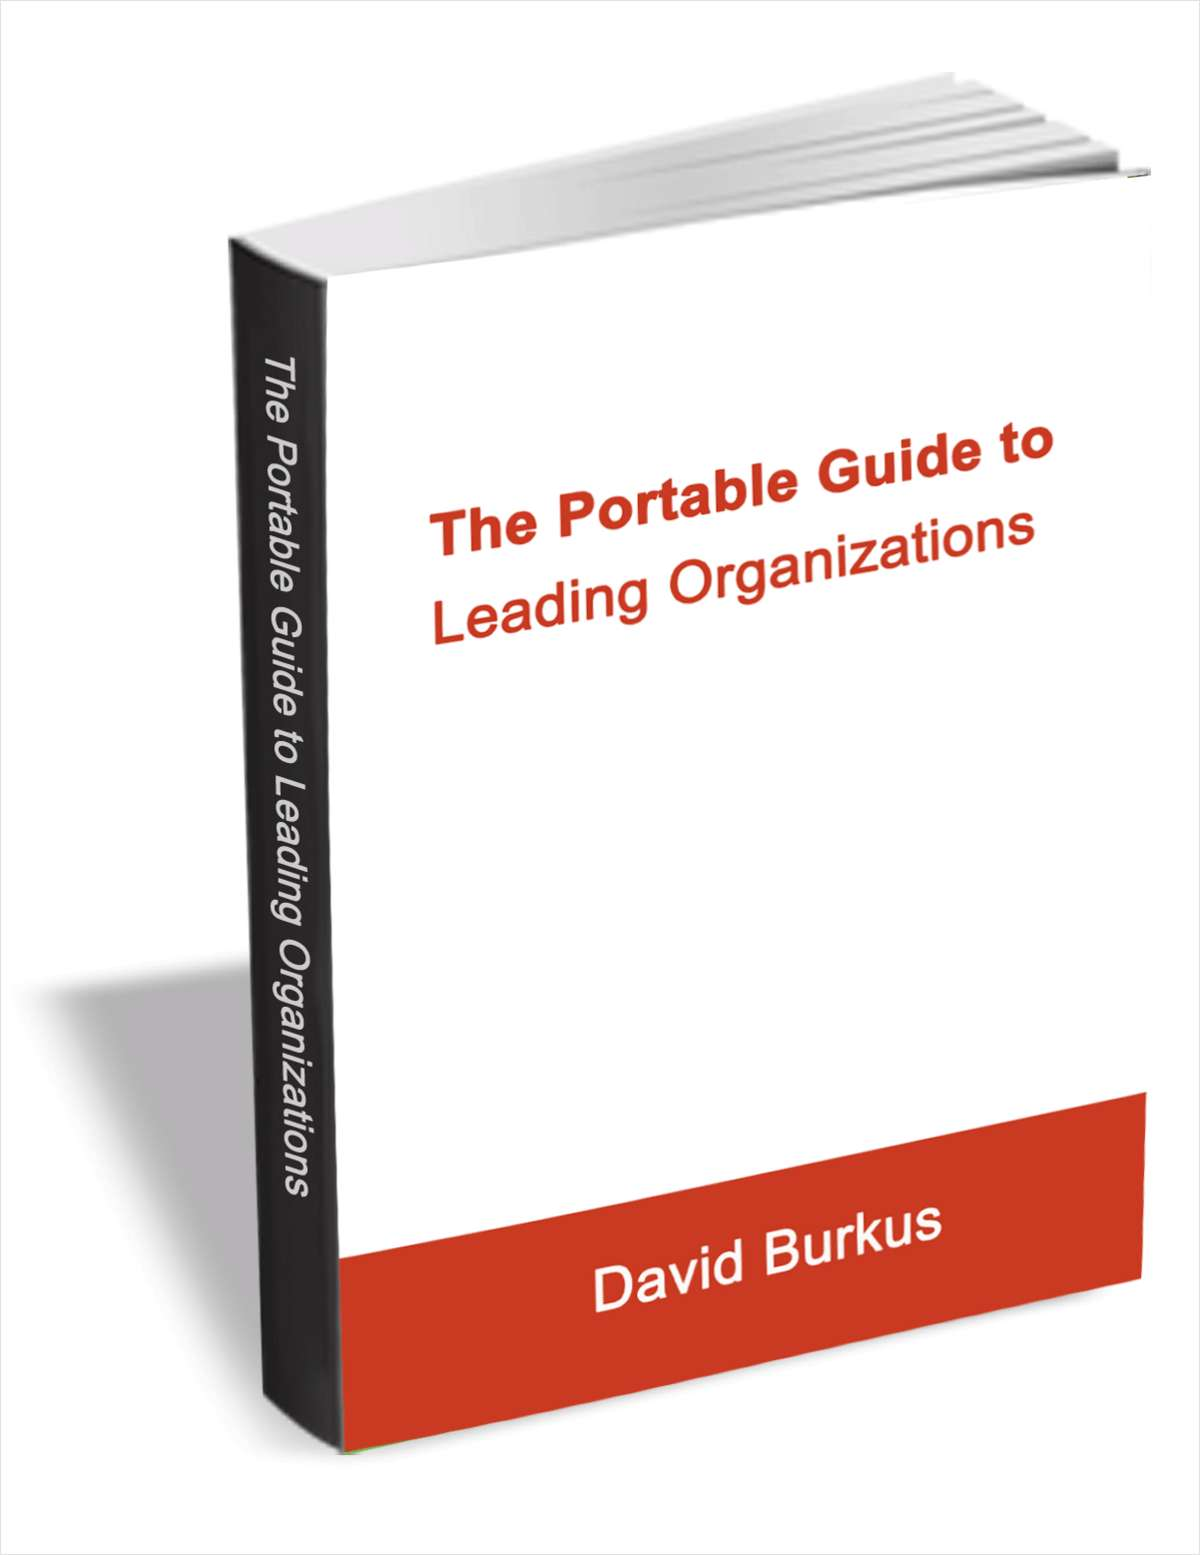 The Portable Guide to Leading Organizations